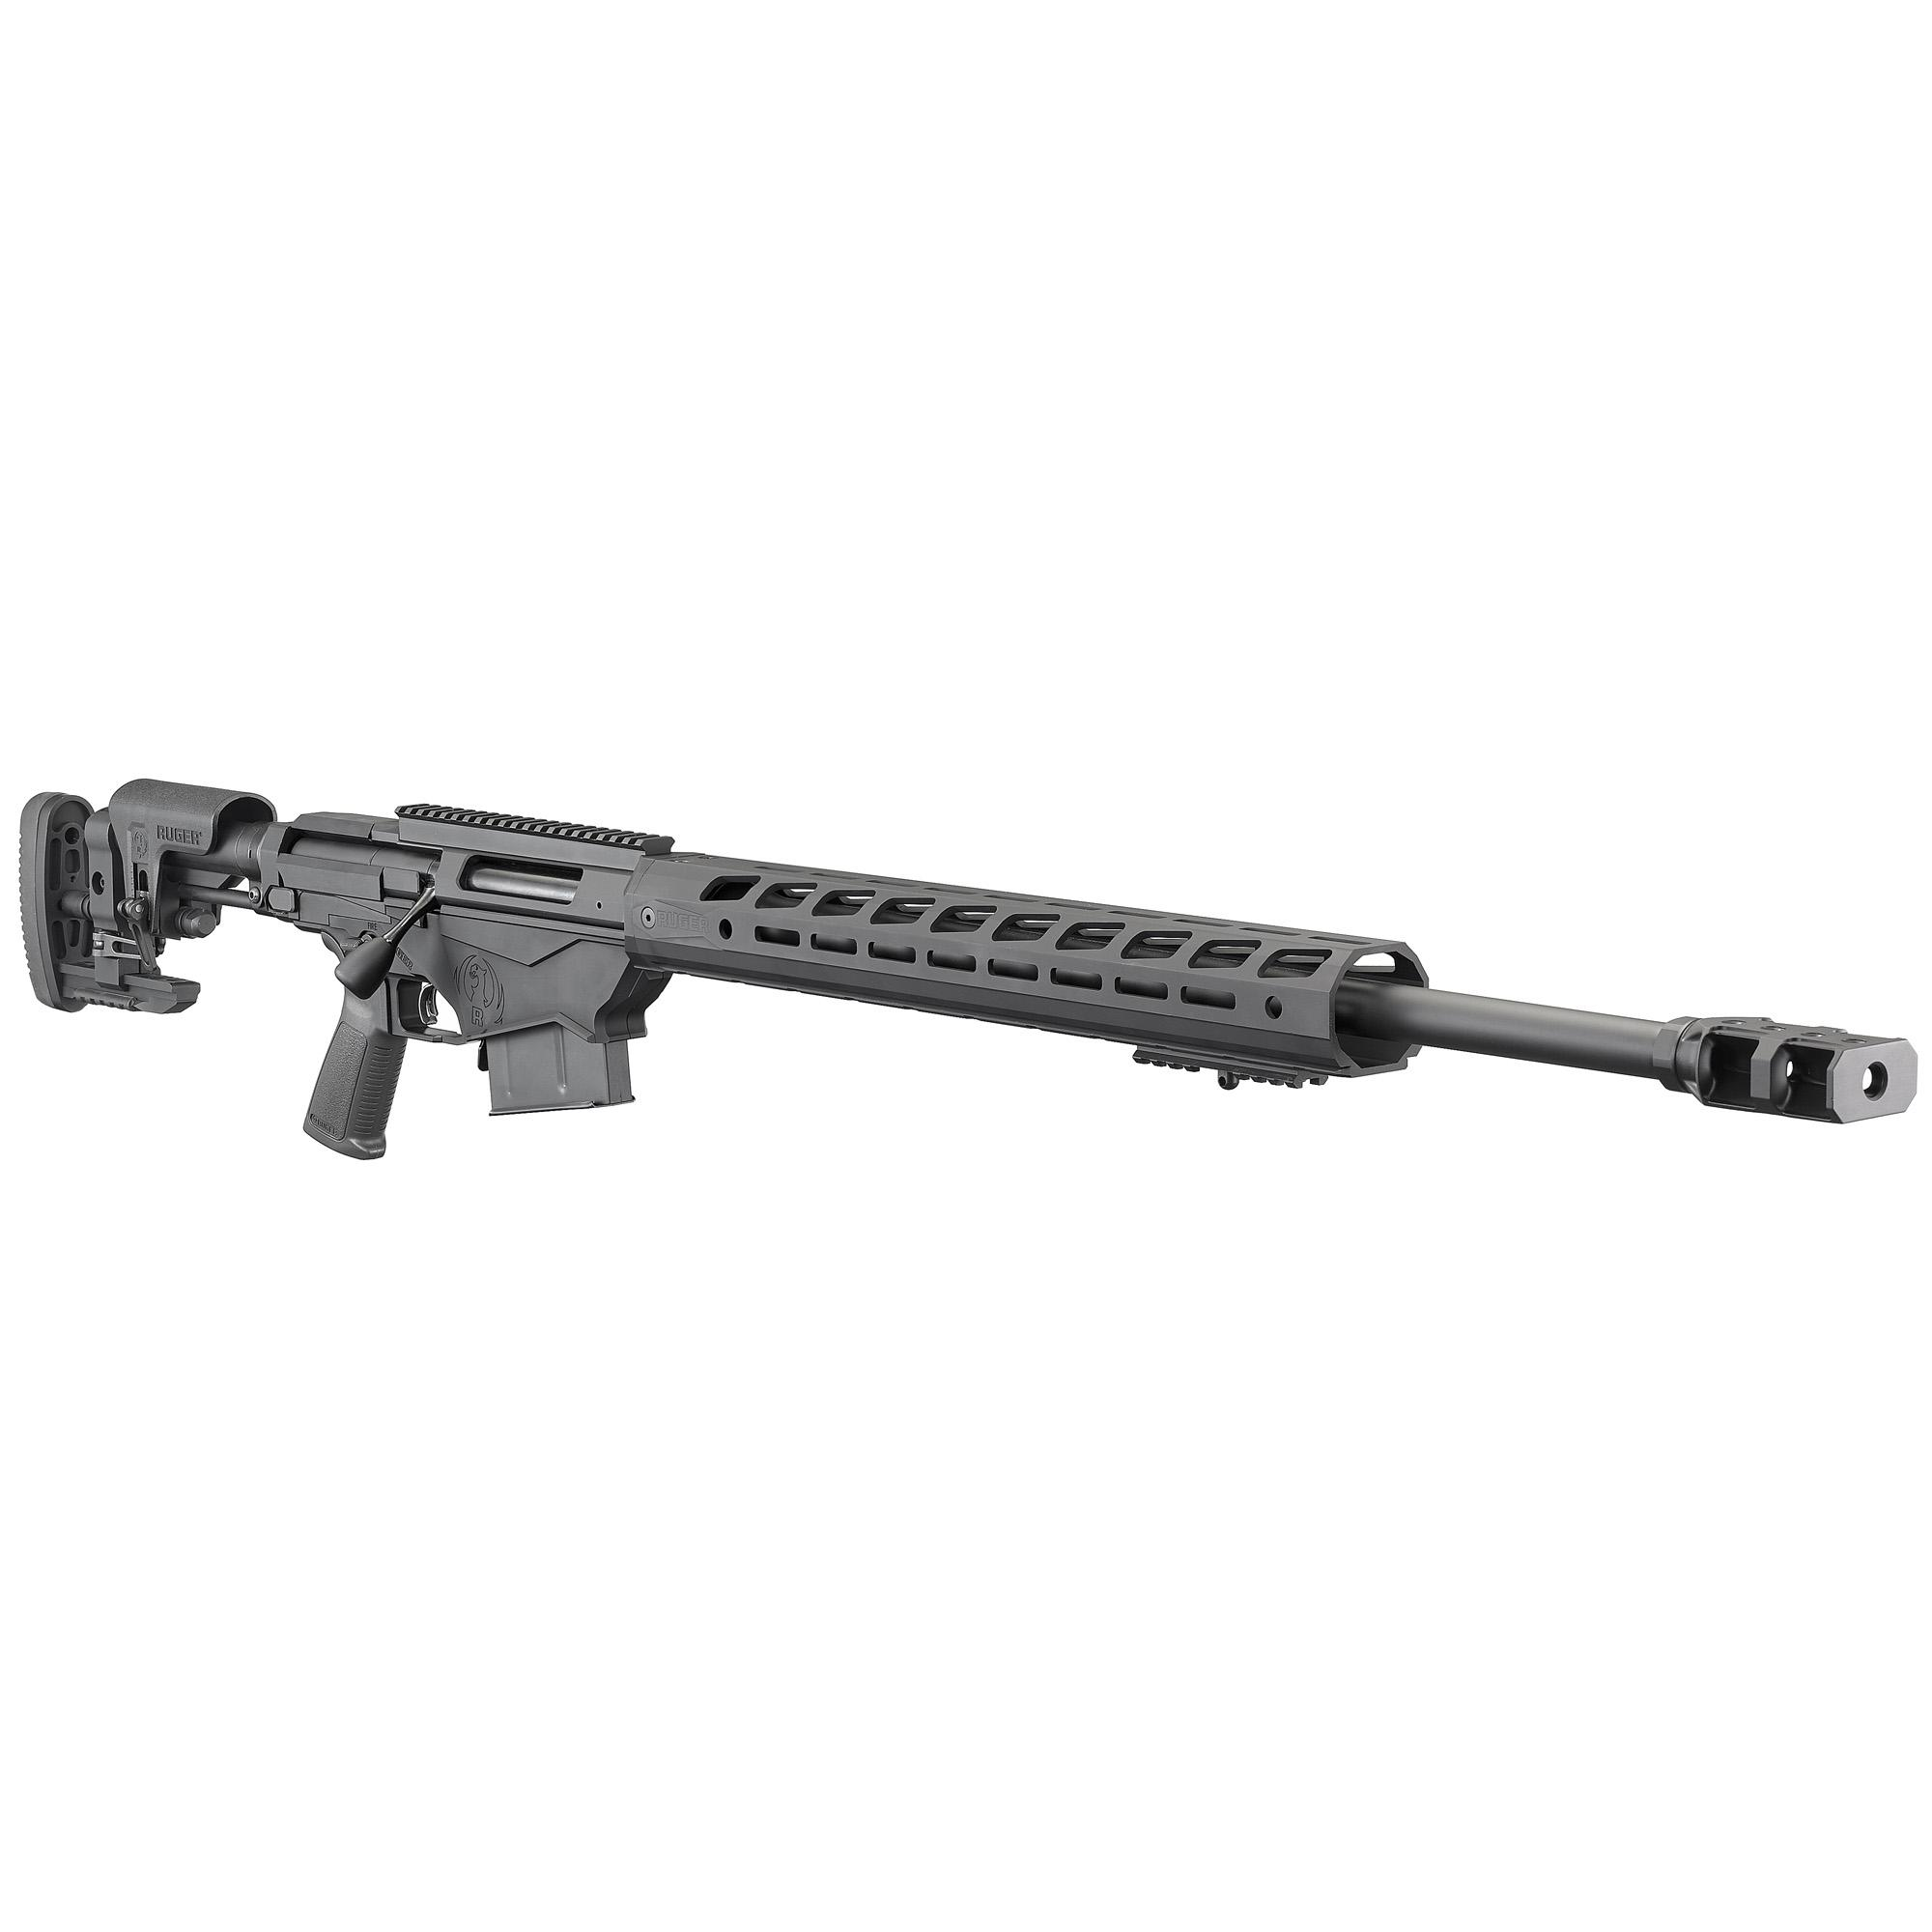 Ruger Precision Rifle 338 Lapua 18080 Photo 2